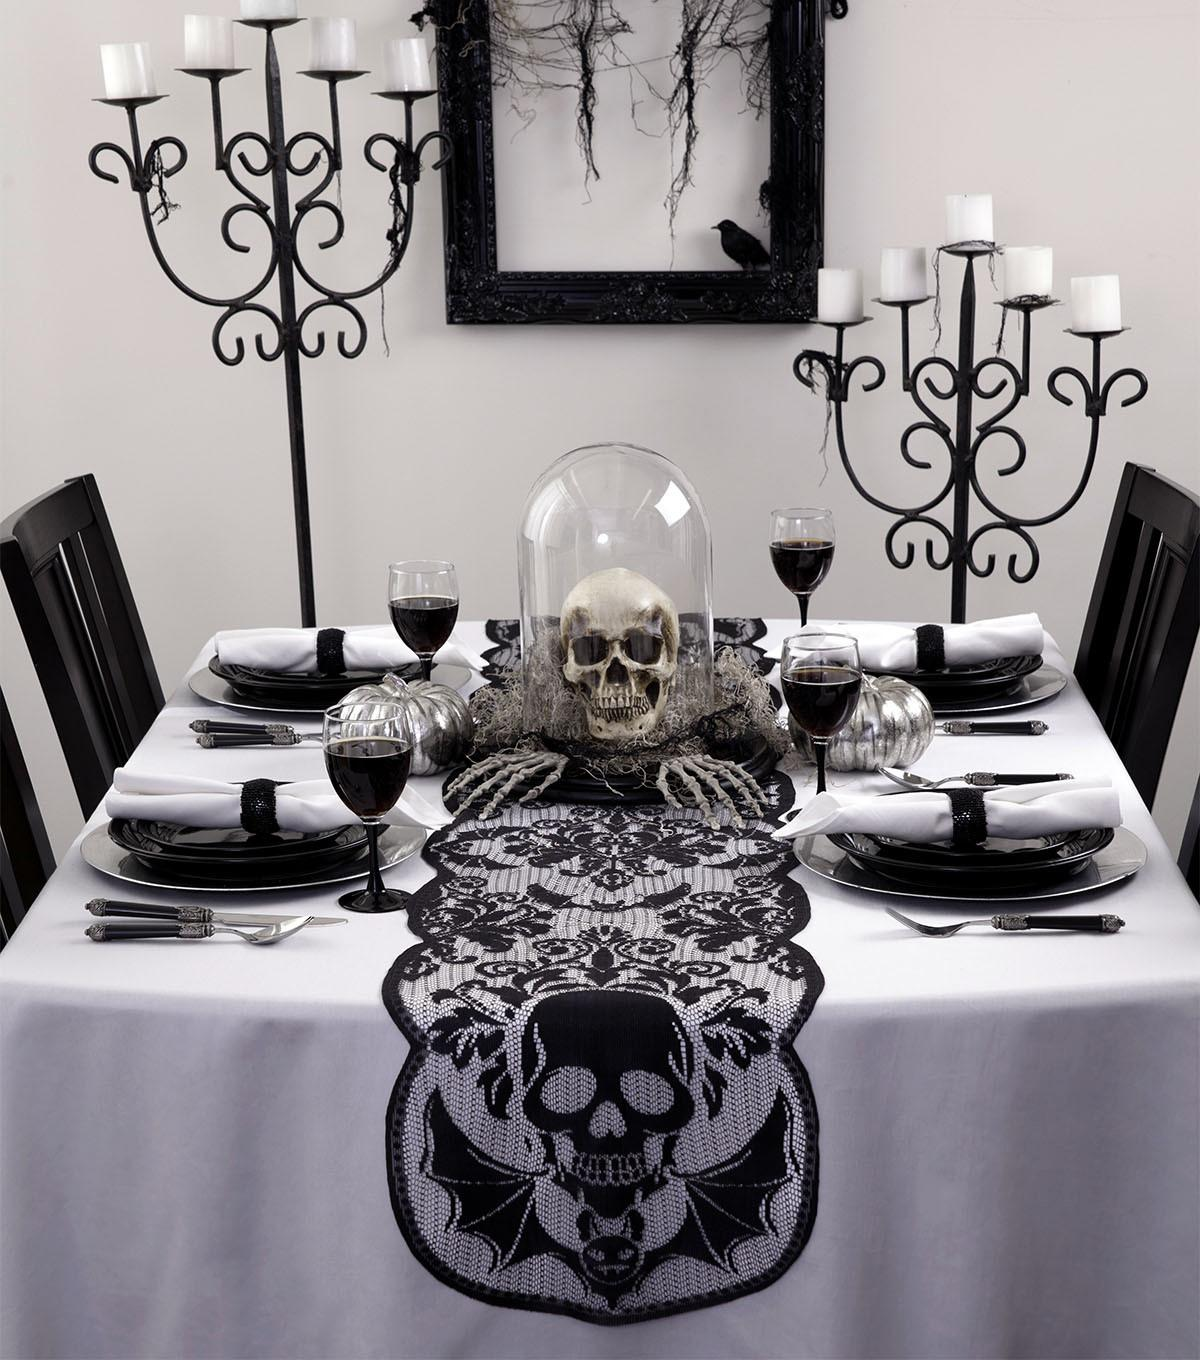 Maker Halloween X14 Table Runner Skull Joann